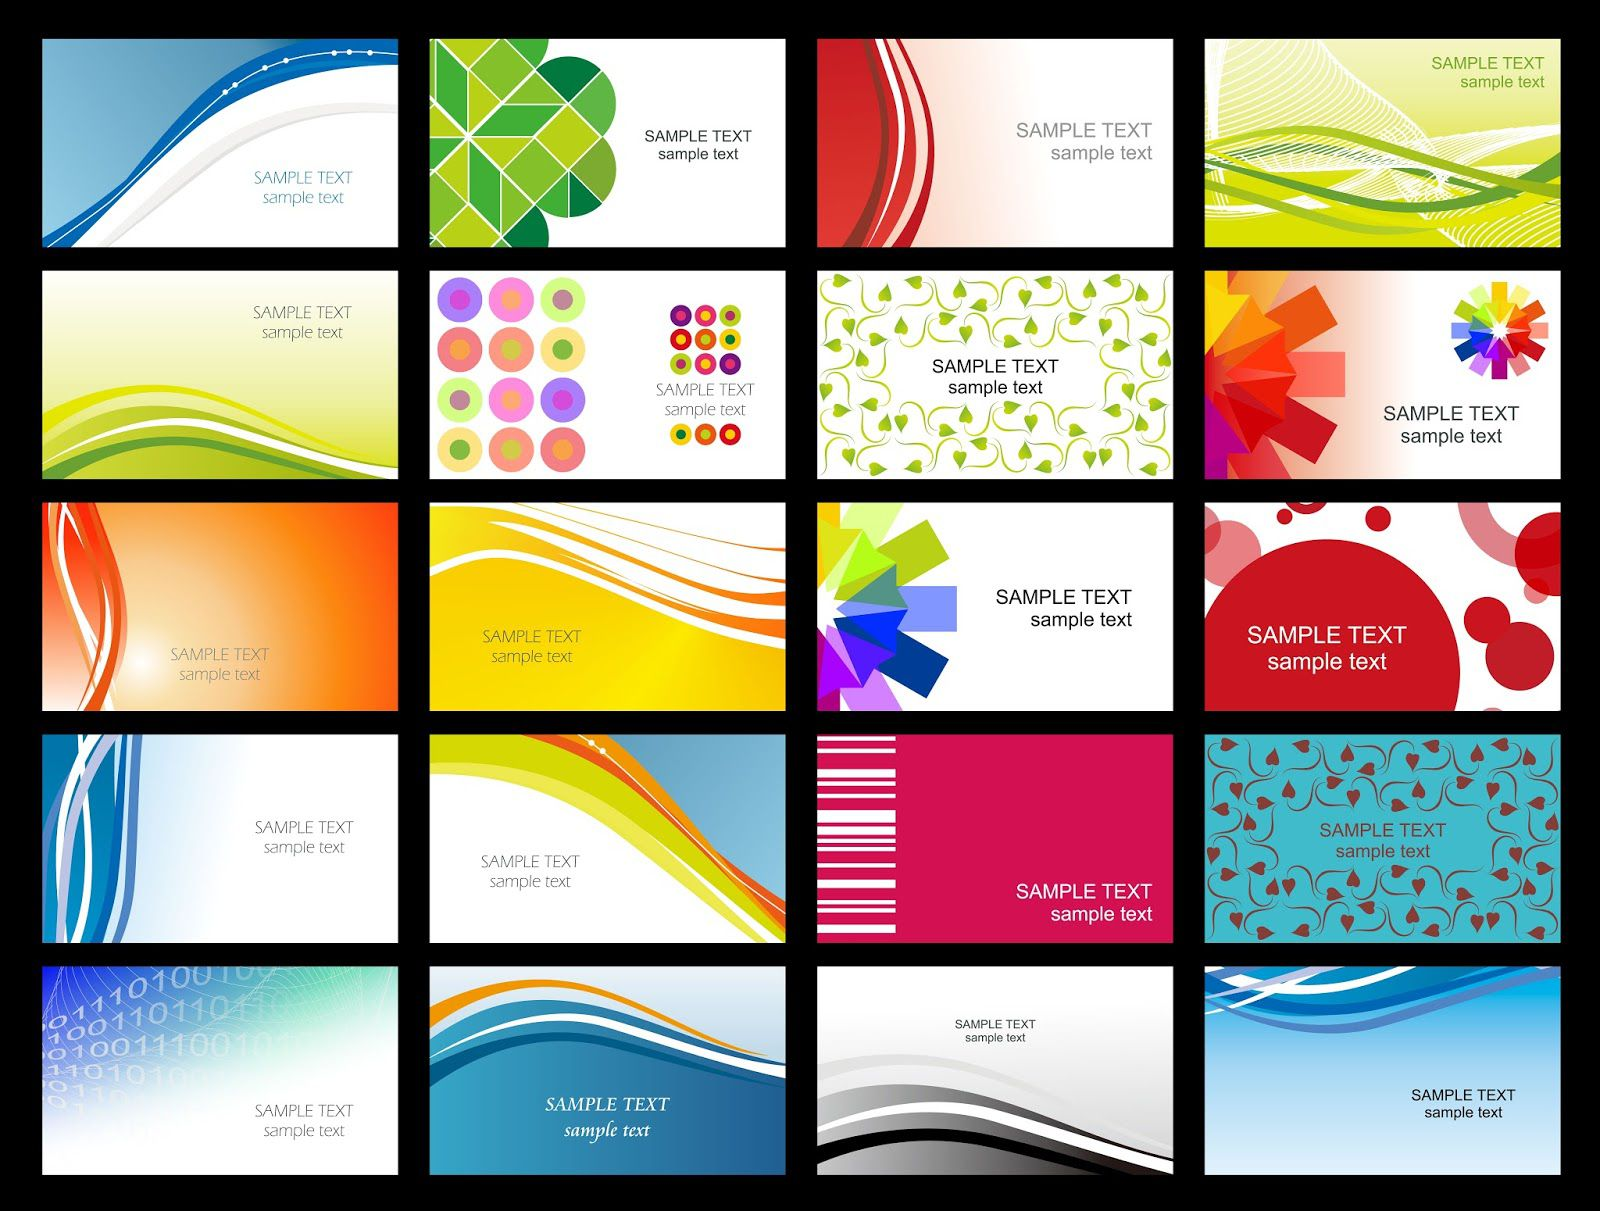 008 Striking Free Download Busines Card Template Concept  For Microsoft Publisher Photoshop PowerpointFull